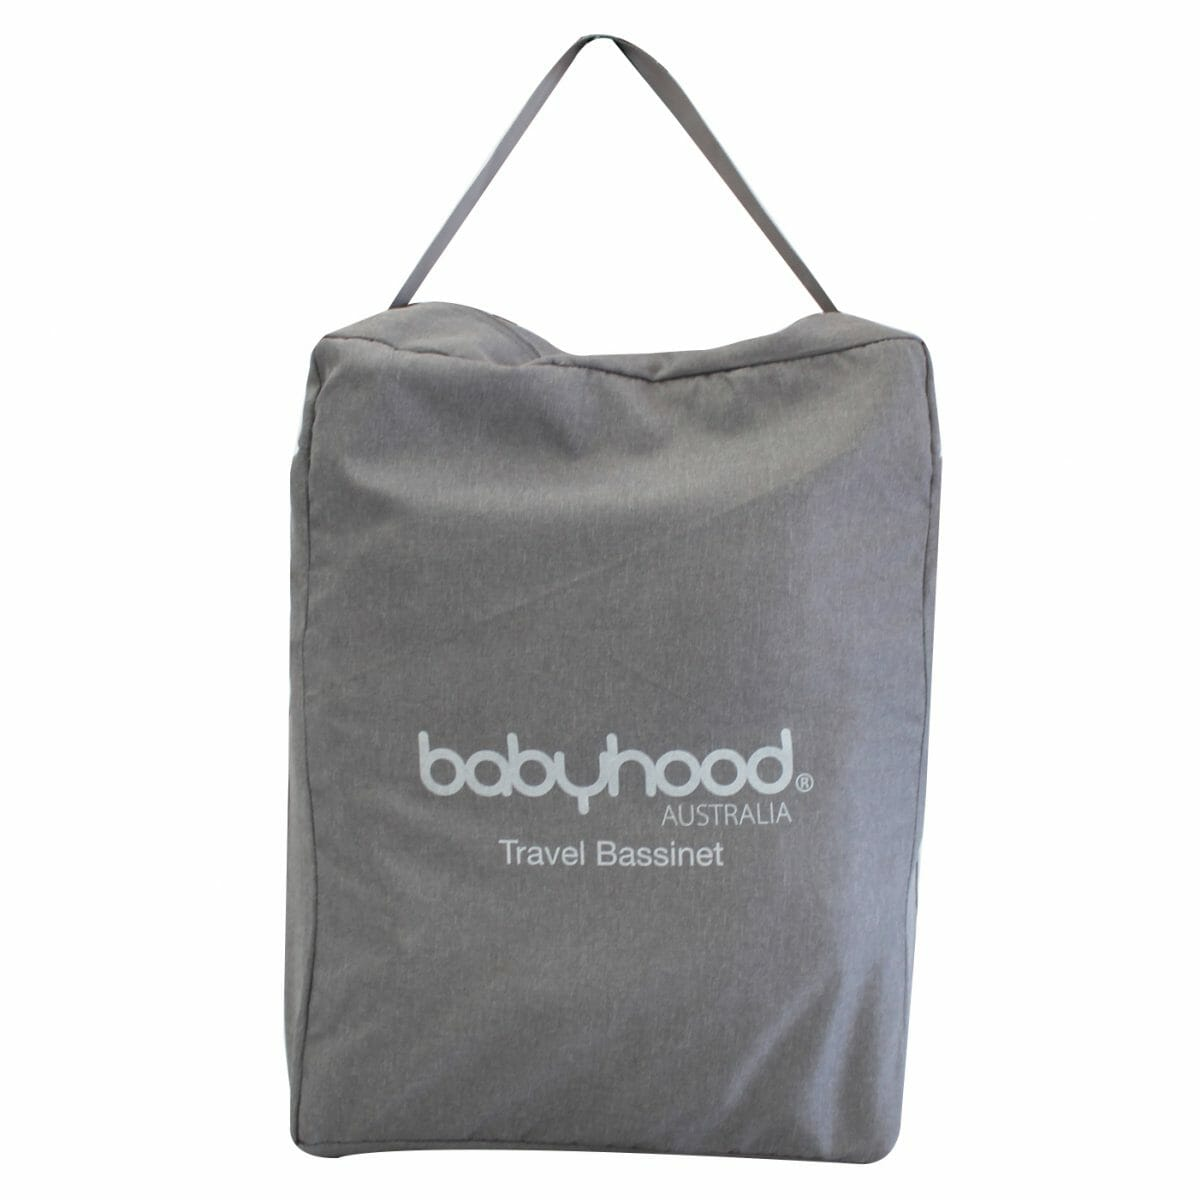 Babyhood Travel Bassinet Bag